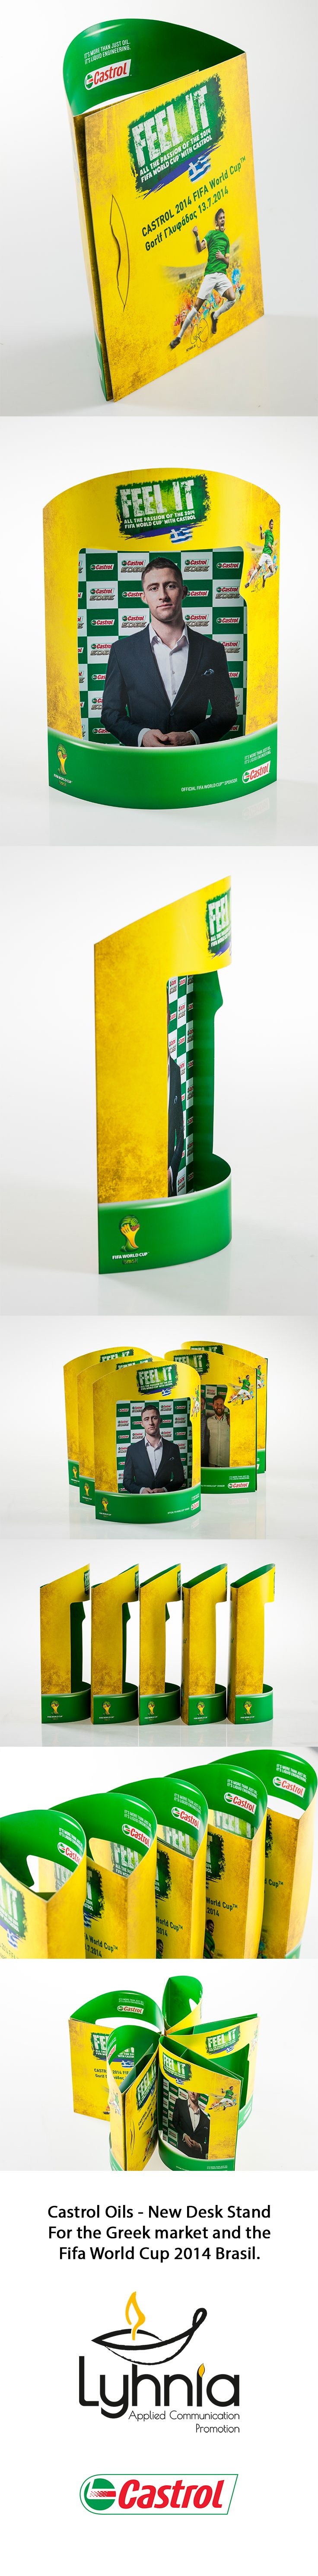 Castrol Oils - New Desk Stand for the new products sponsored by Fifa World Cup Brasil 2014.